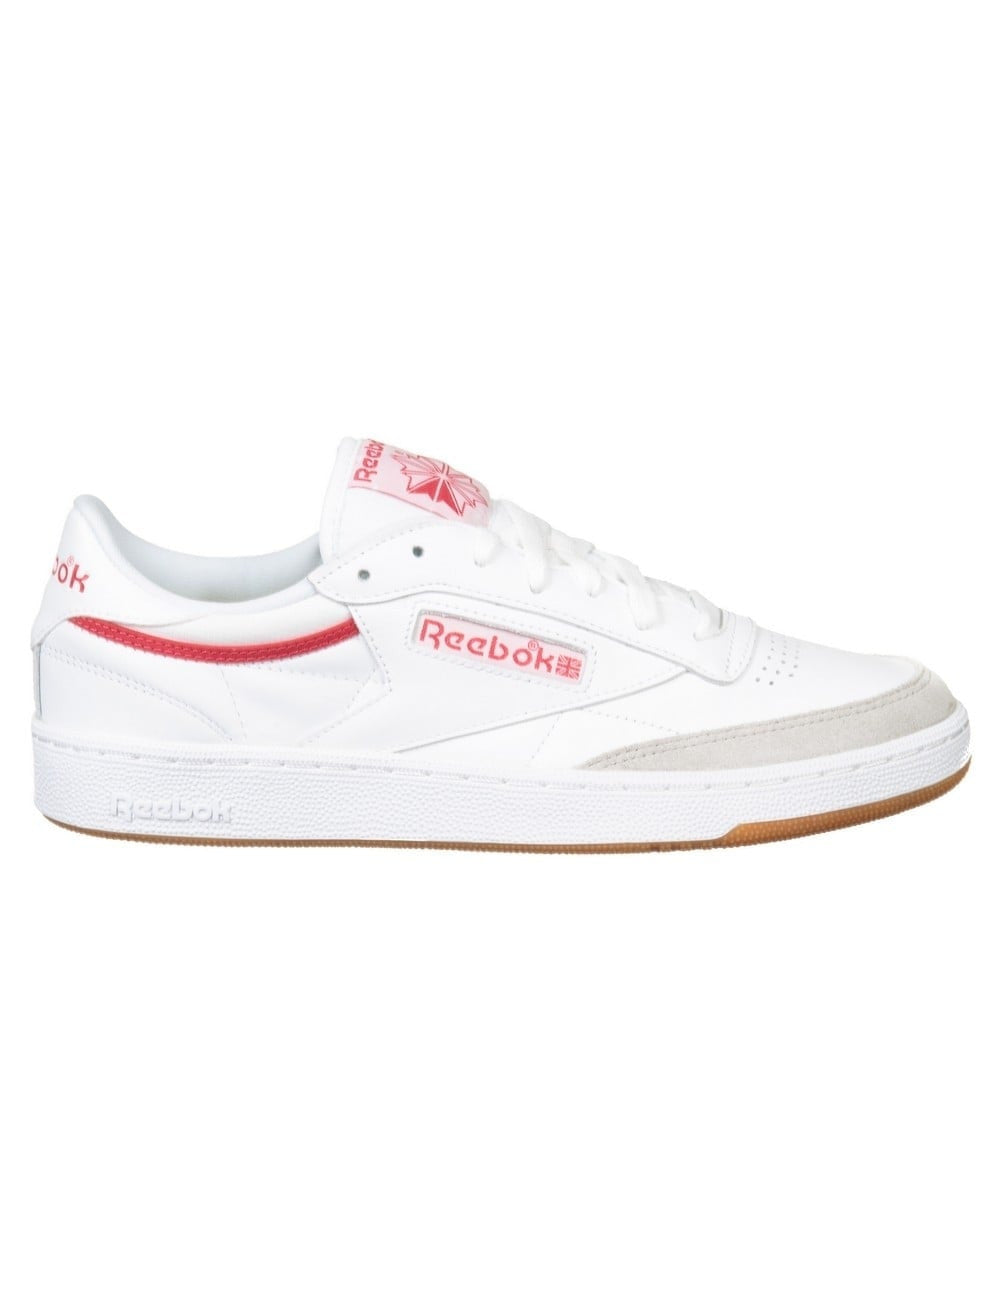 Reebok Club C 85 CP (White/Grey/Excellent Red)